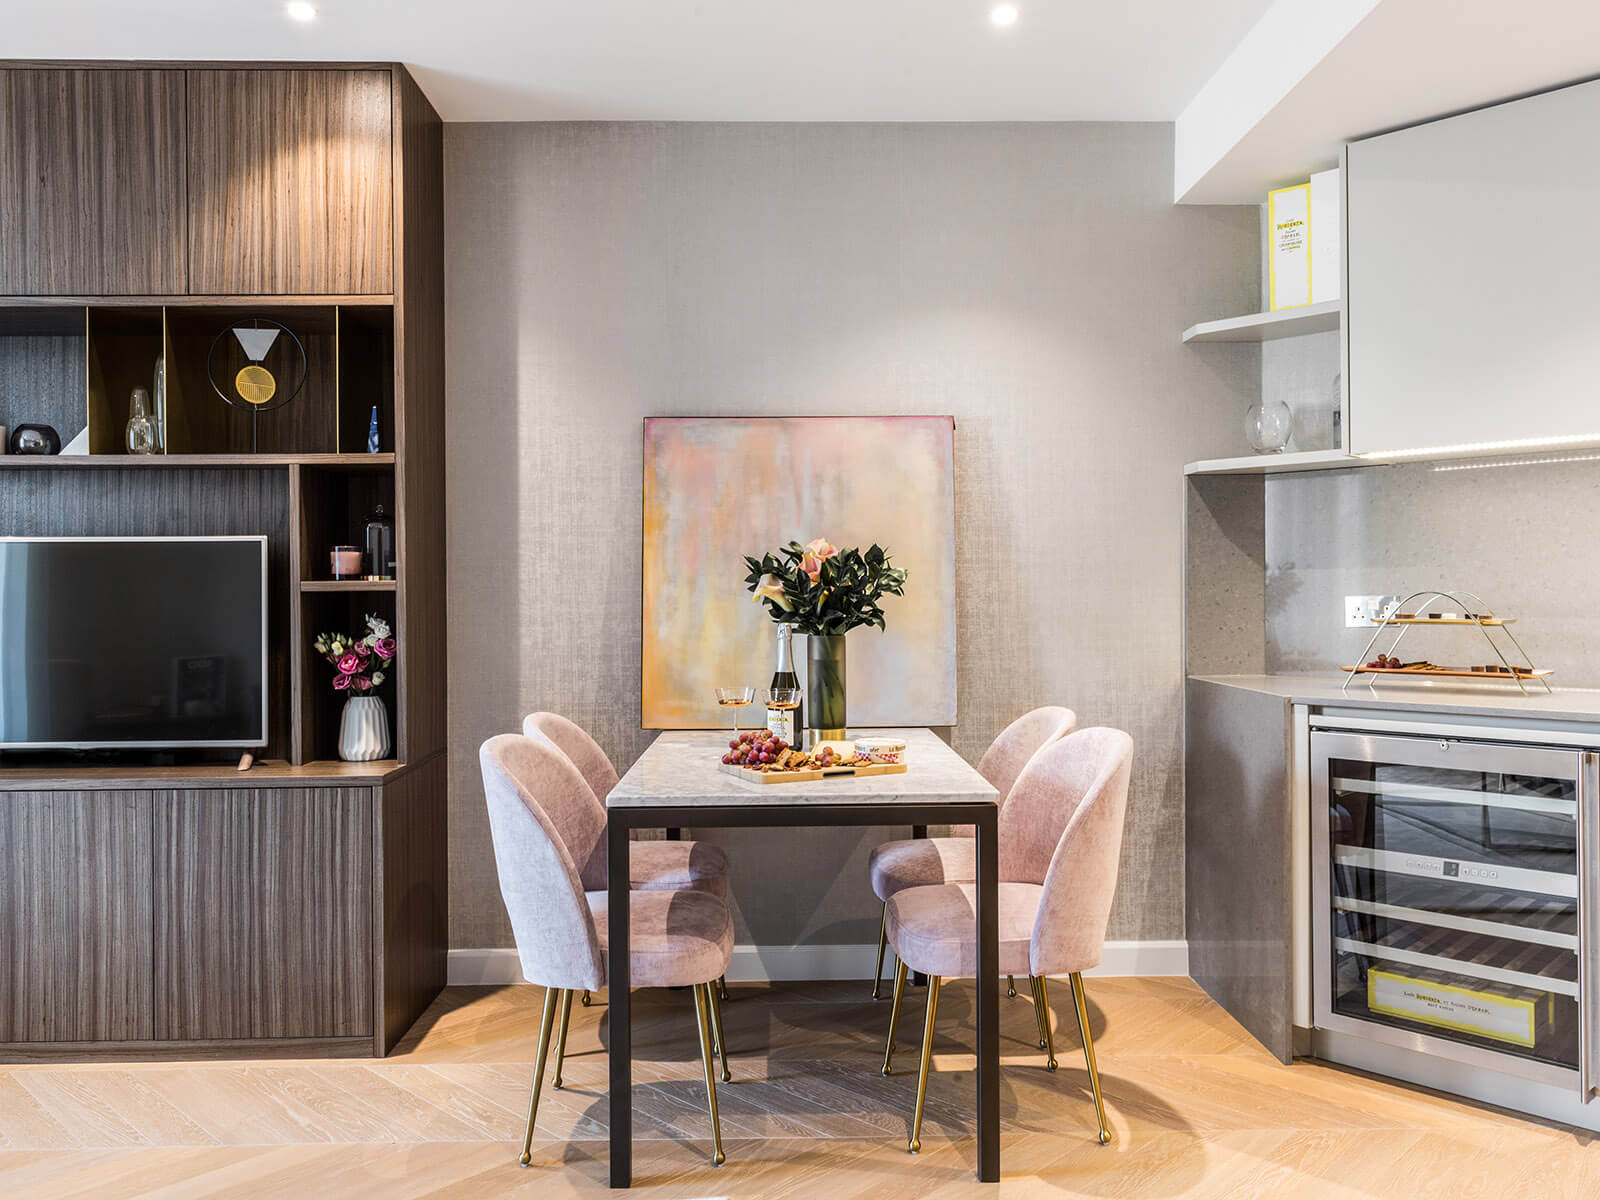 residential interior design for light and spacious kitchen with small dining area in apartment in Westminster, London